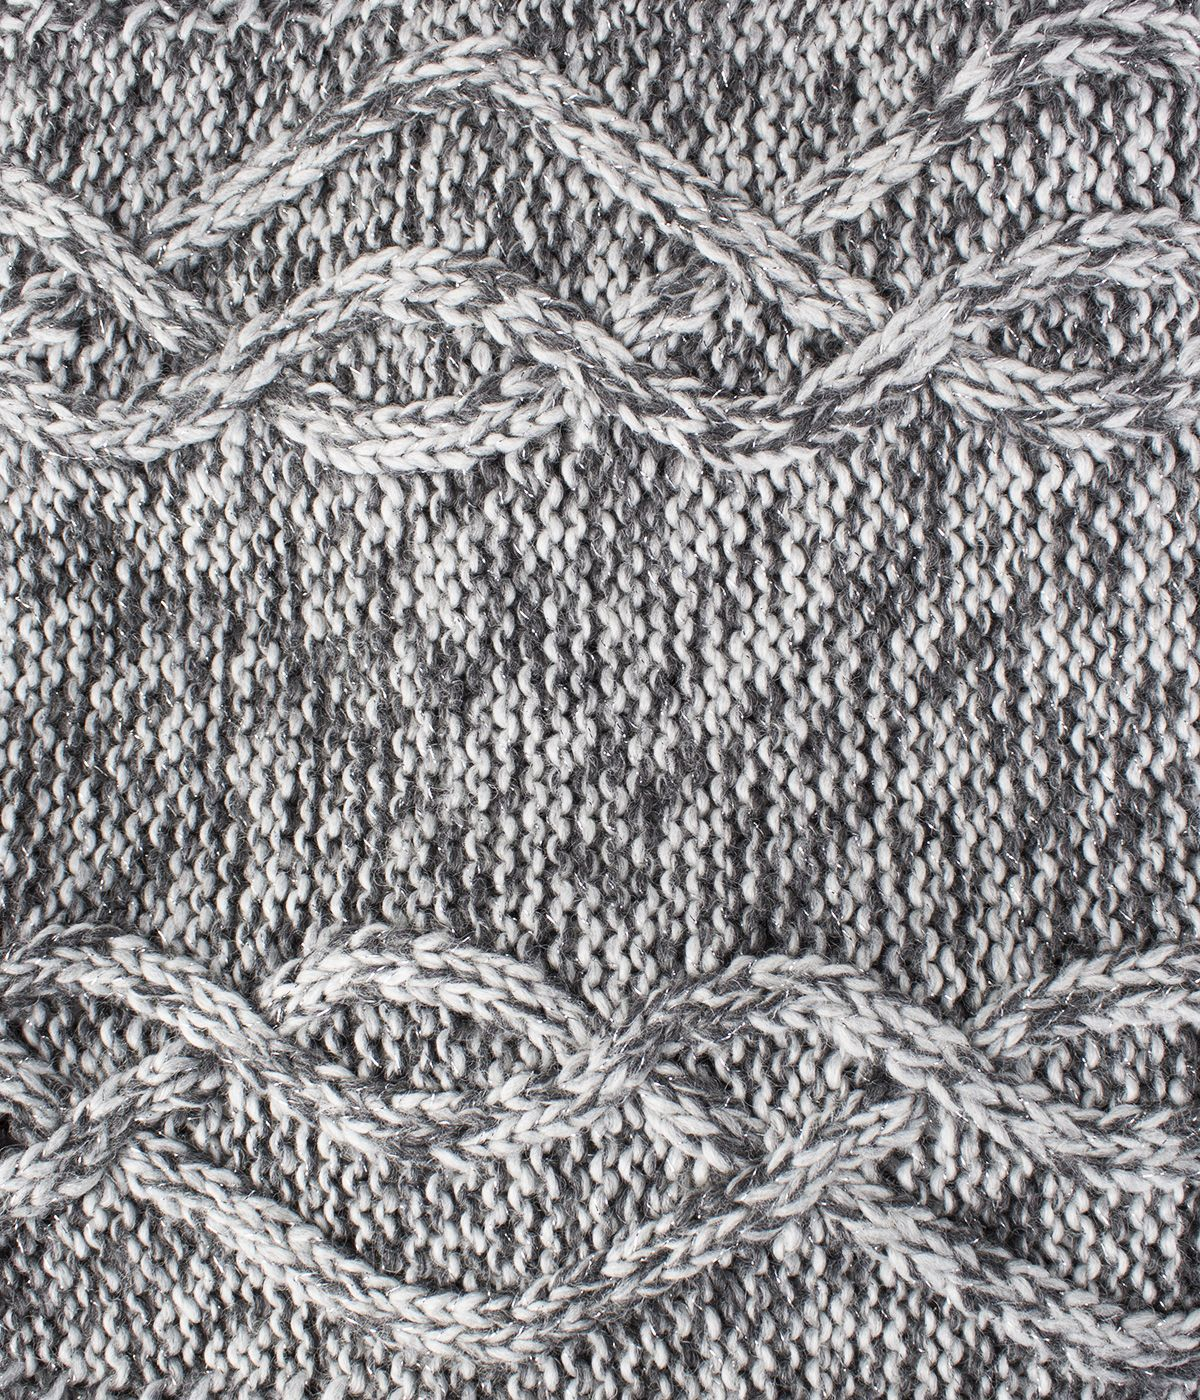 GREY KNITTED SCARF 0